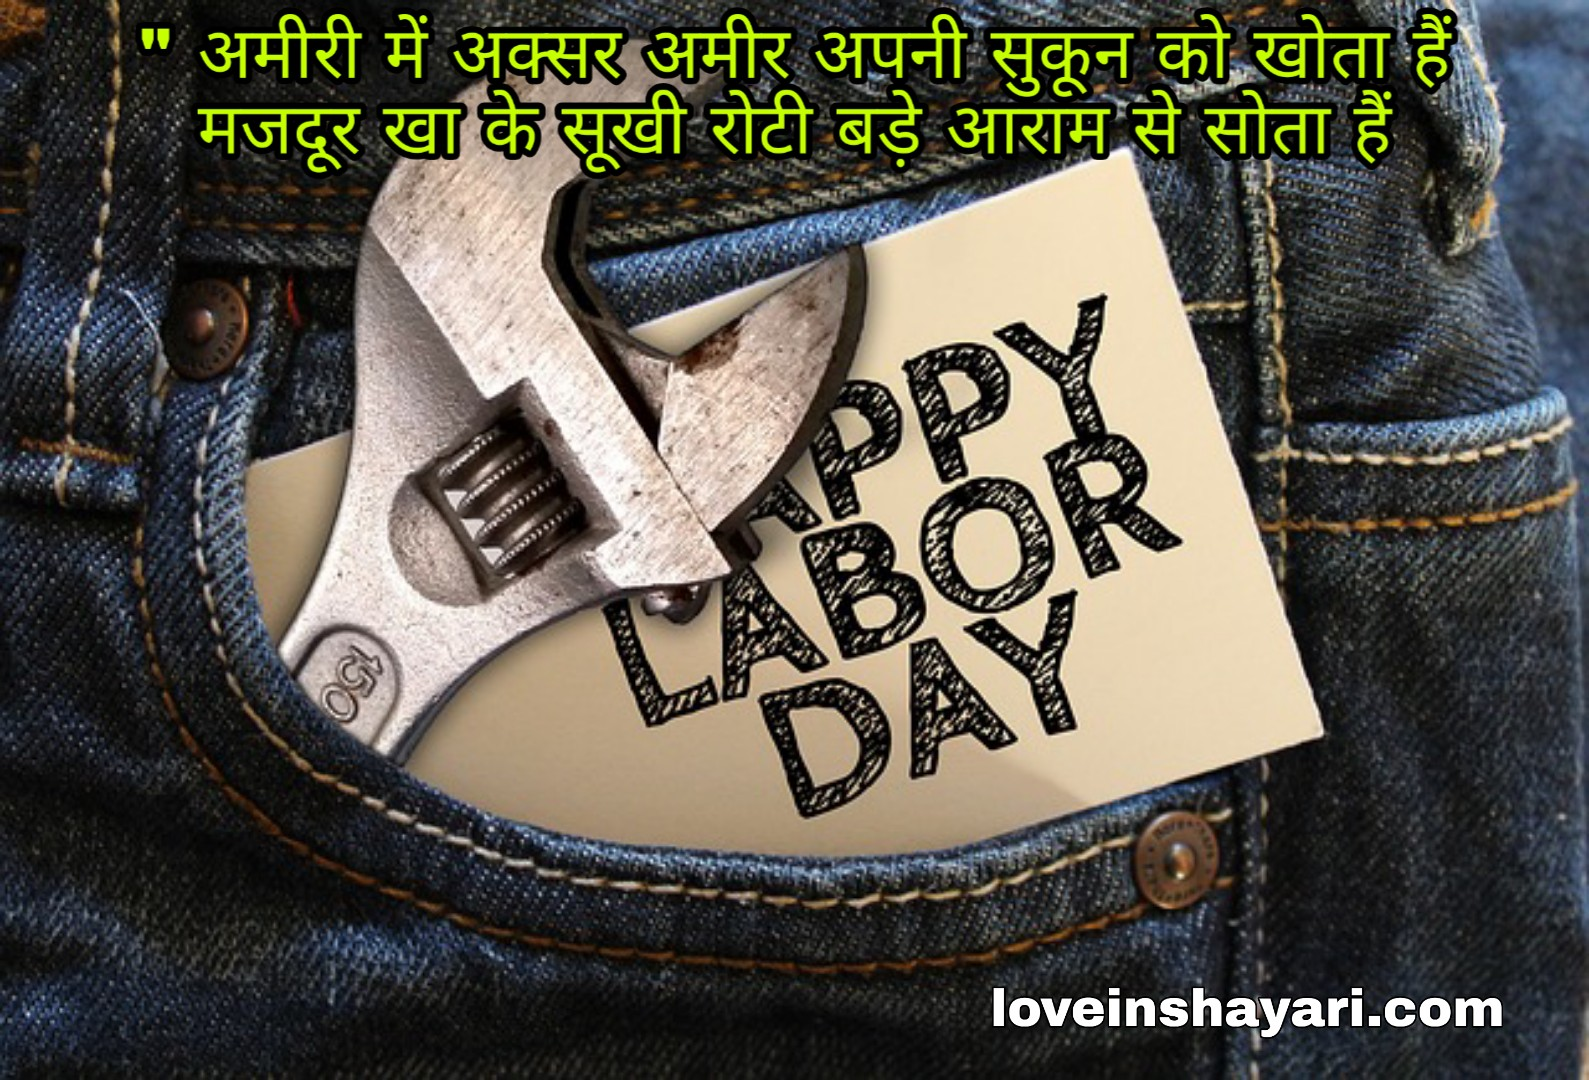 Labour day wishes shayari quotes messages